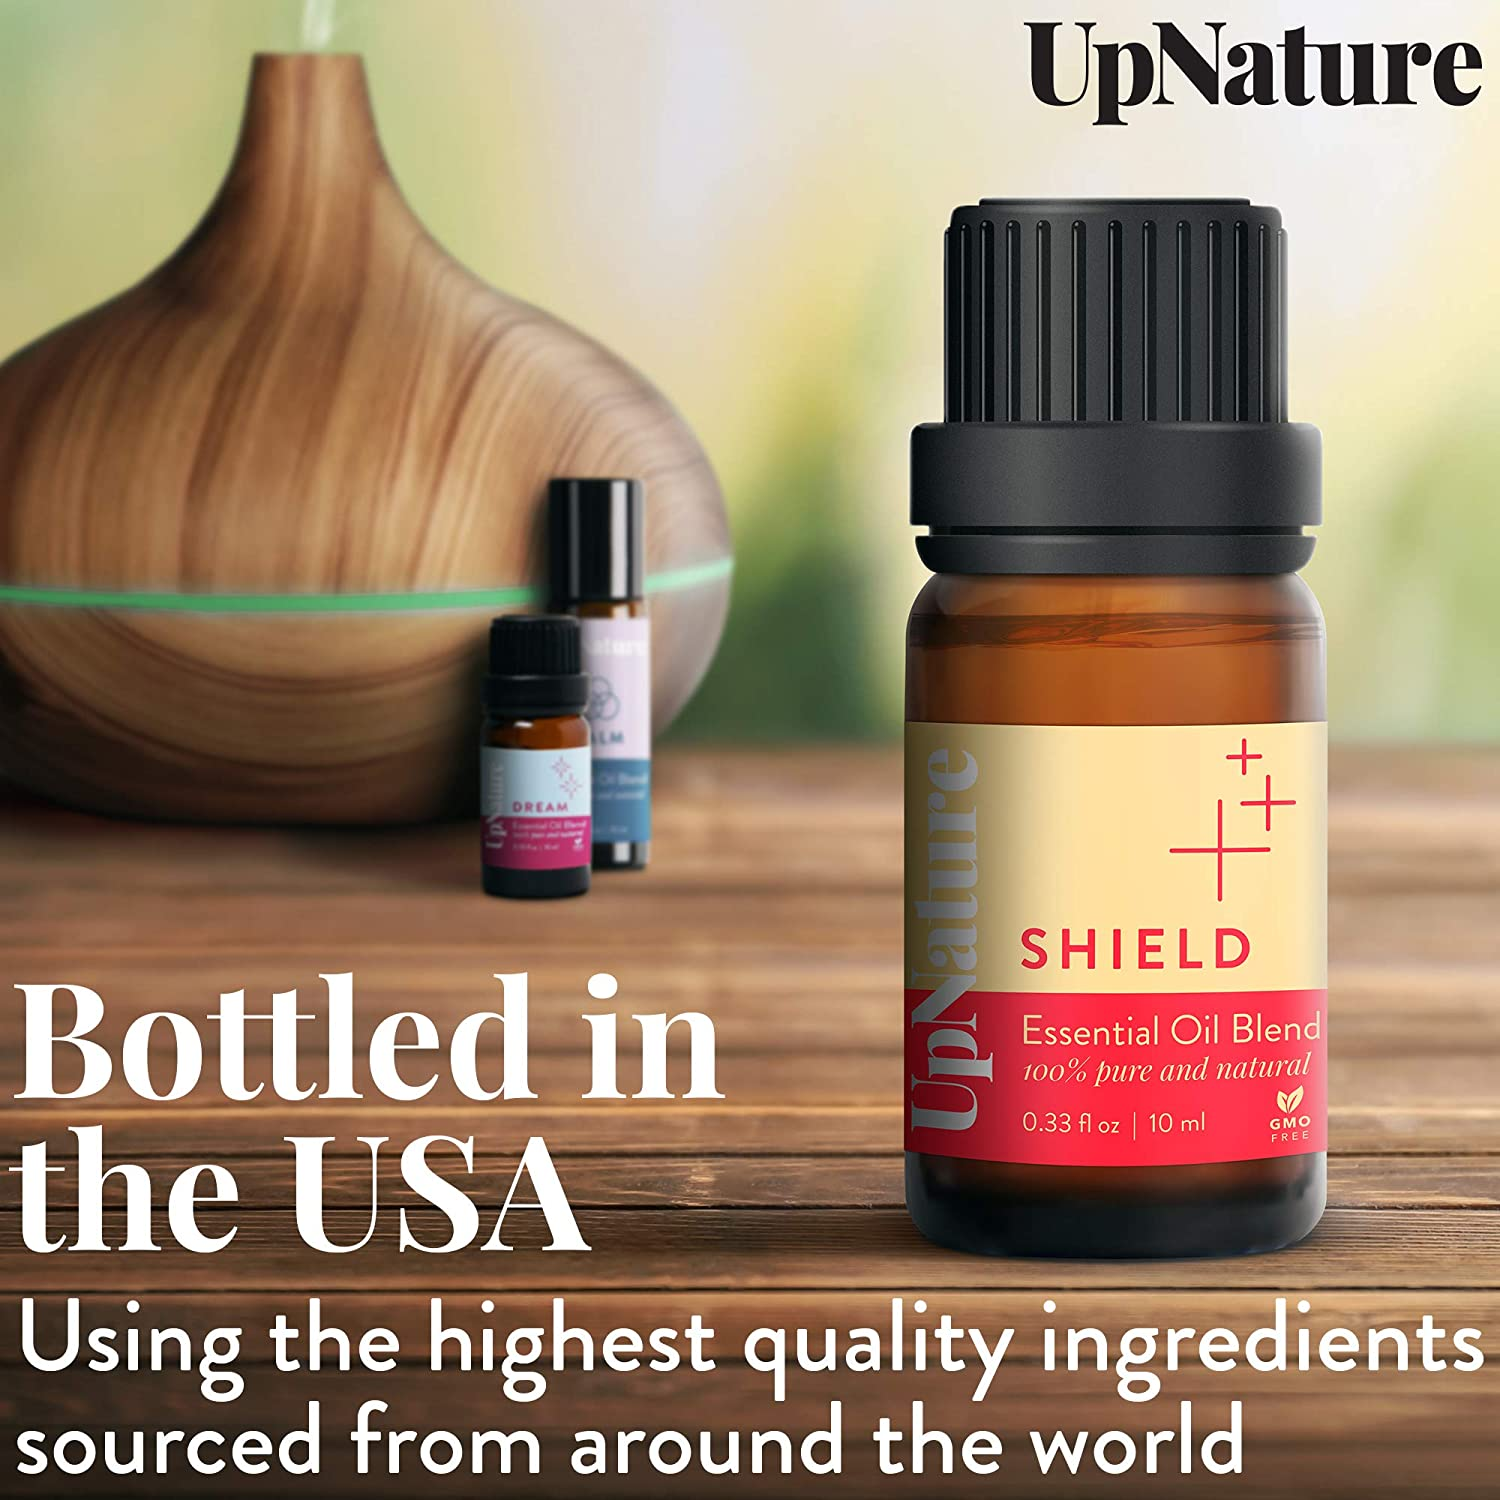 Shield Essential Oil Blend - 100% Pure Essential Oil - Keep Immunity On Guard - Fights Germs - Prevent Illness - Relieves Sickness & Cough